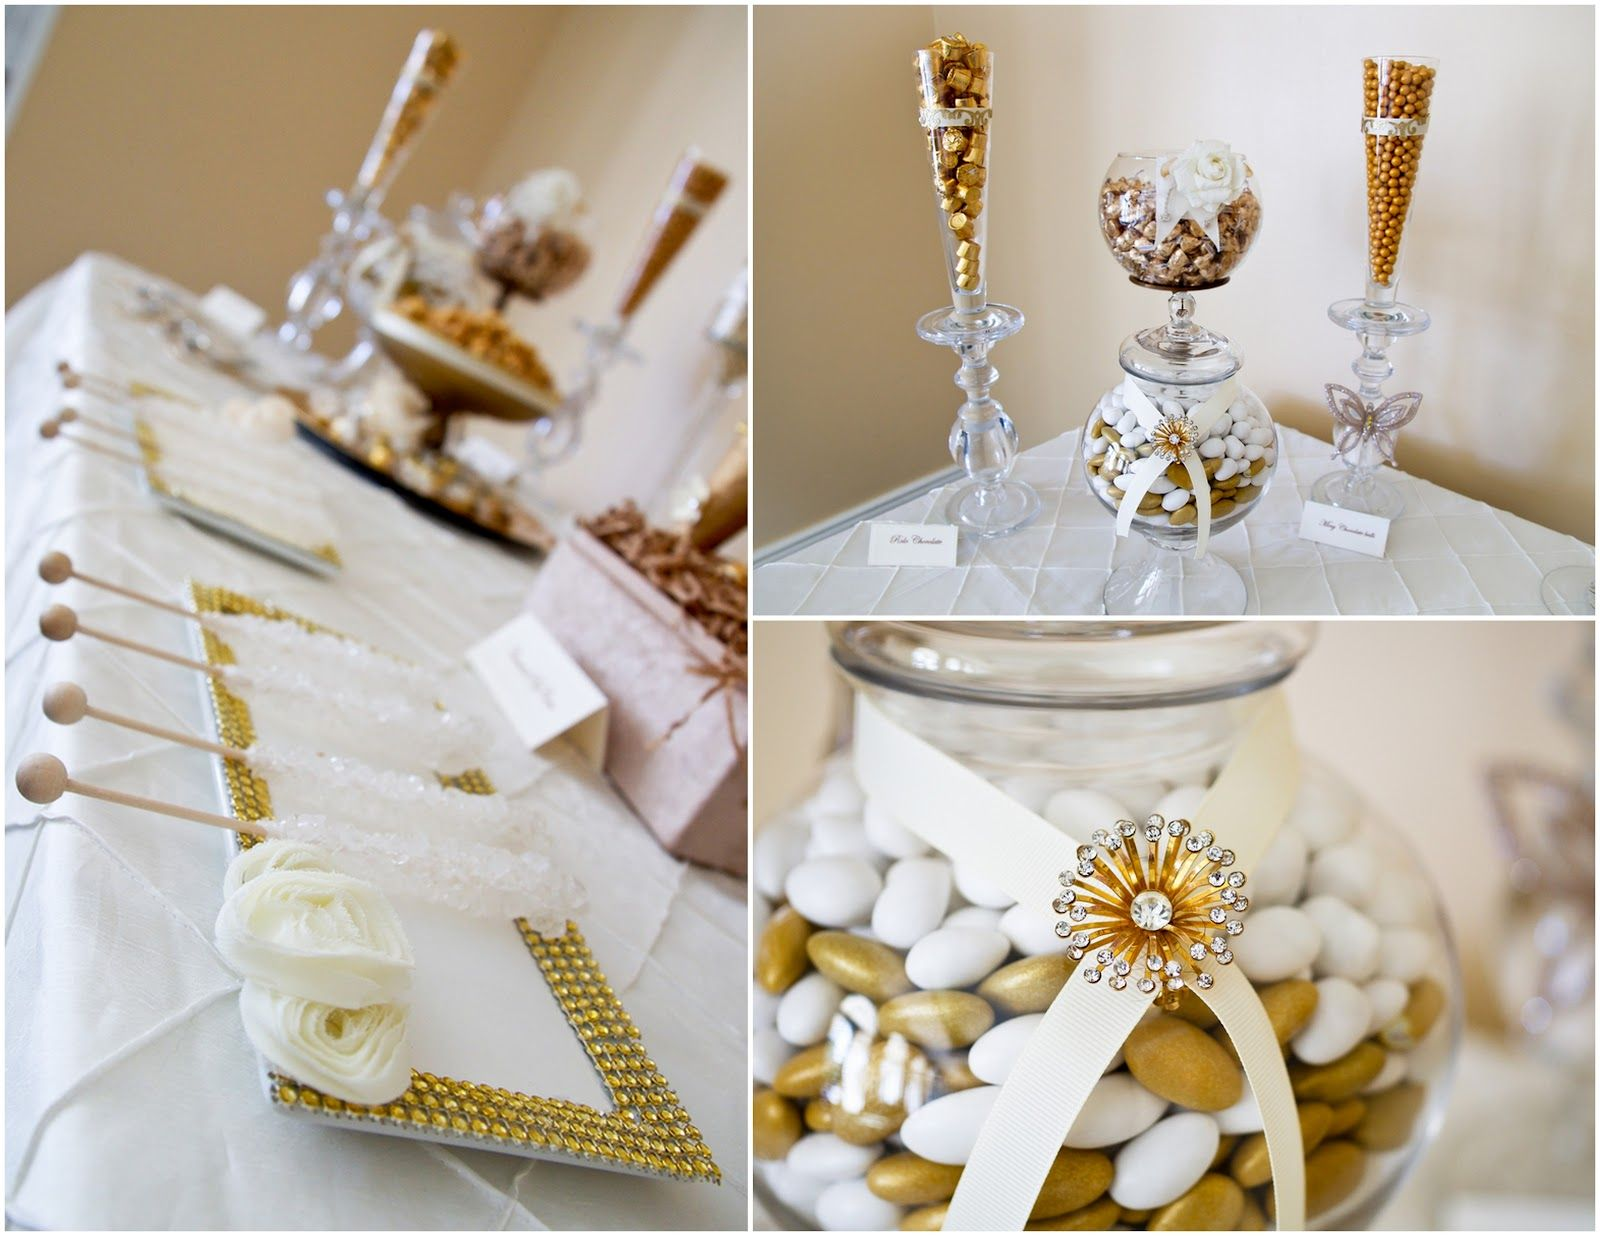 Country Harvest | White desserts, Dessert table and Chic wedding